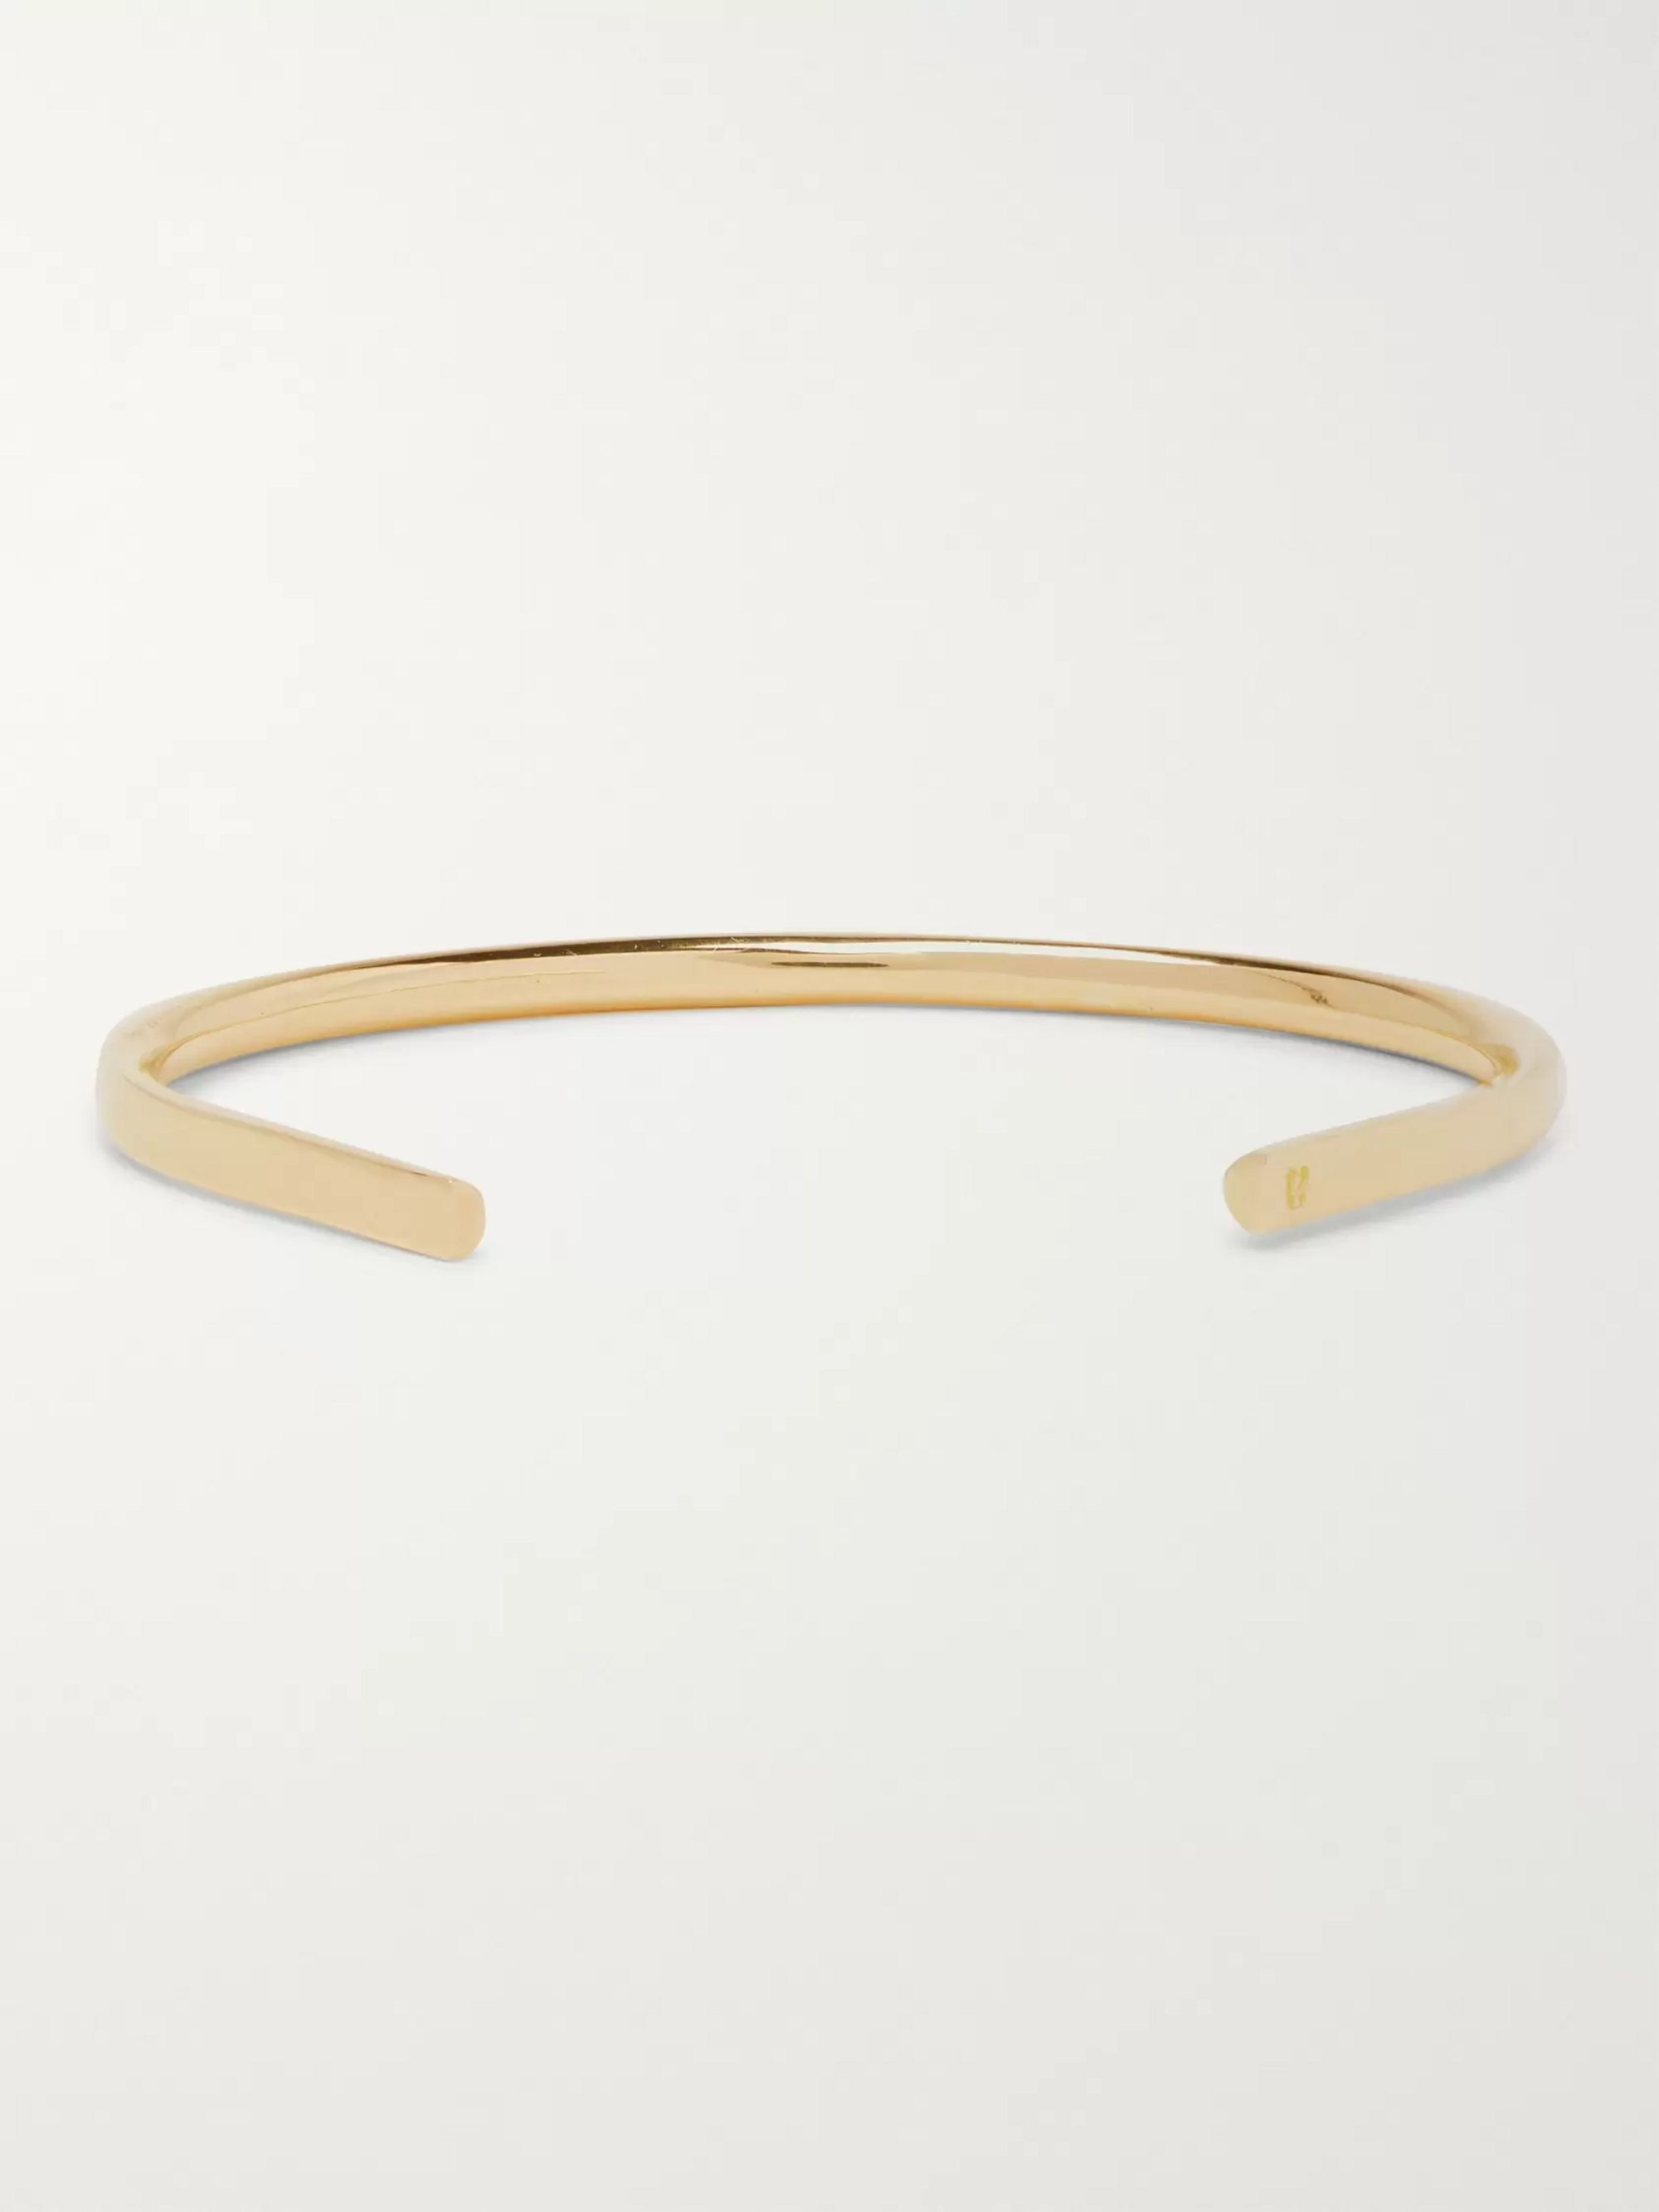 Alice Made This P4 Bancroft 18-Karat Gold Cuff